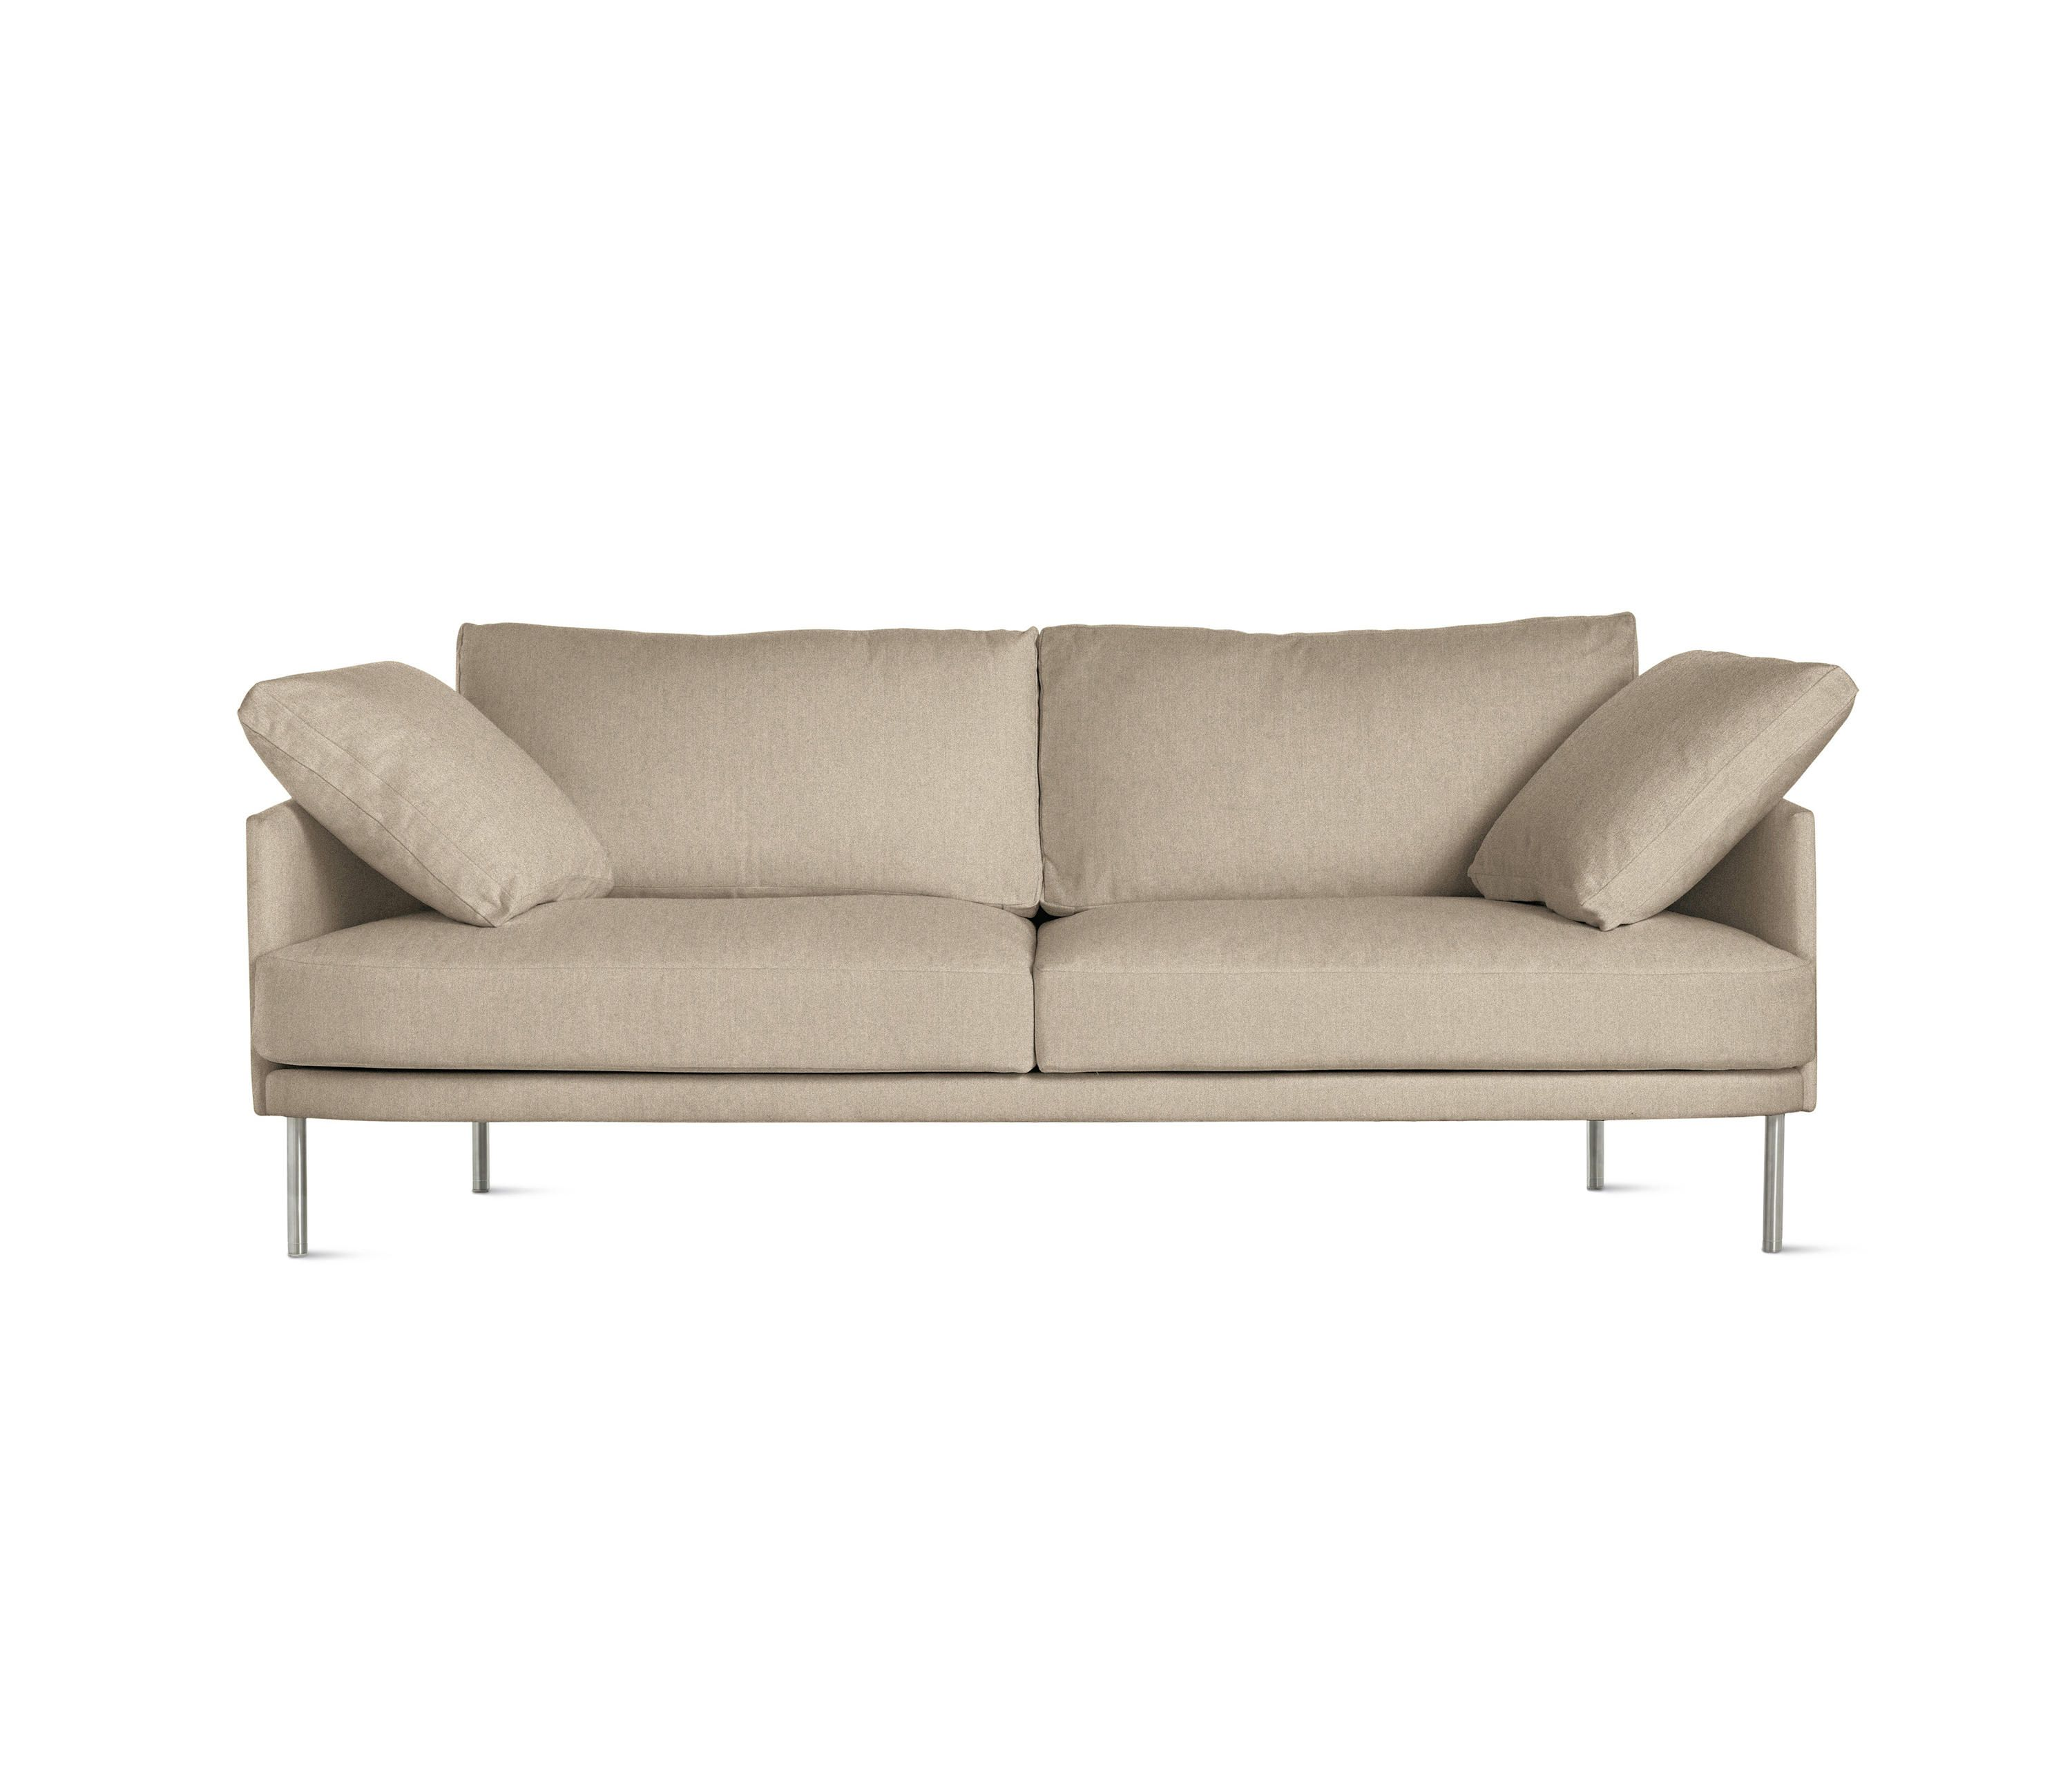 Dwr Camber Sofa Review Okeviewdesignco